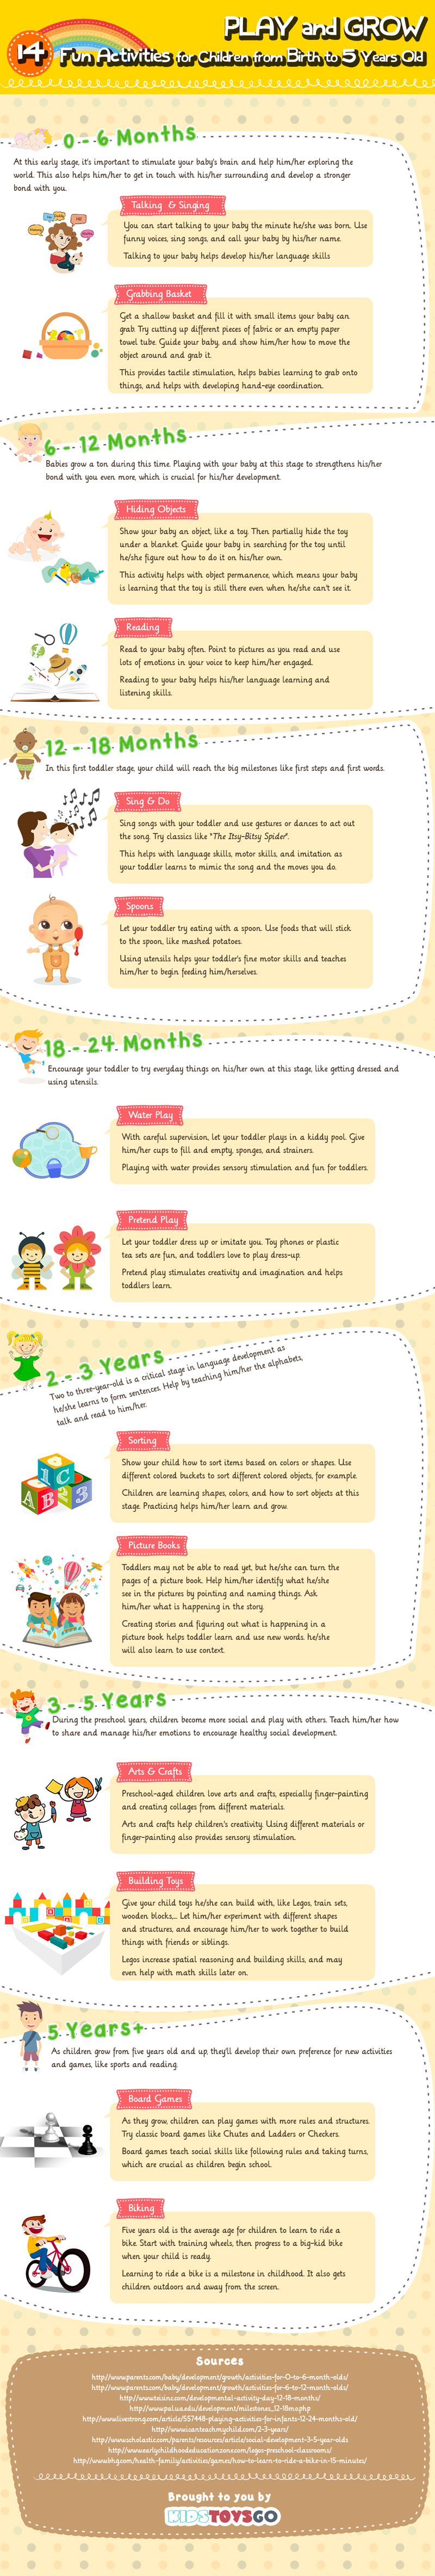 14 Fun Activities for Children from Birth to 5 Years Old